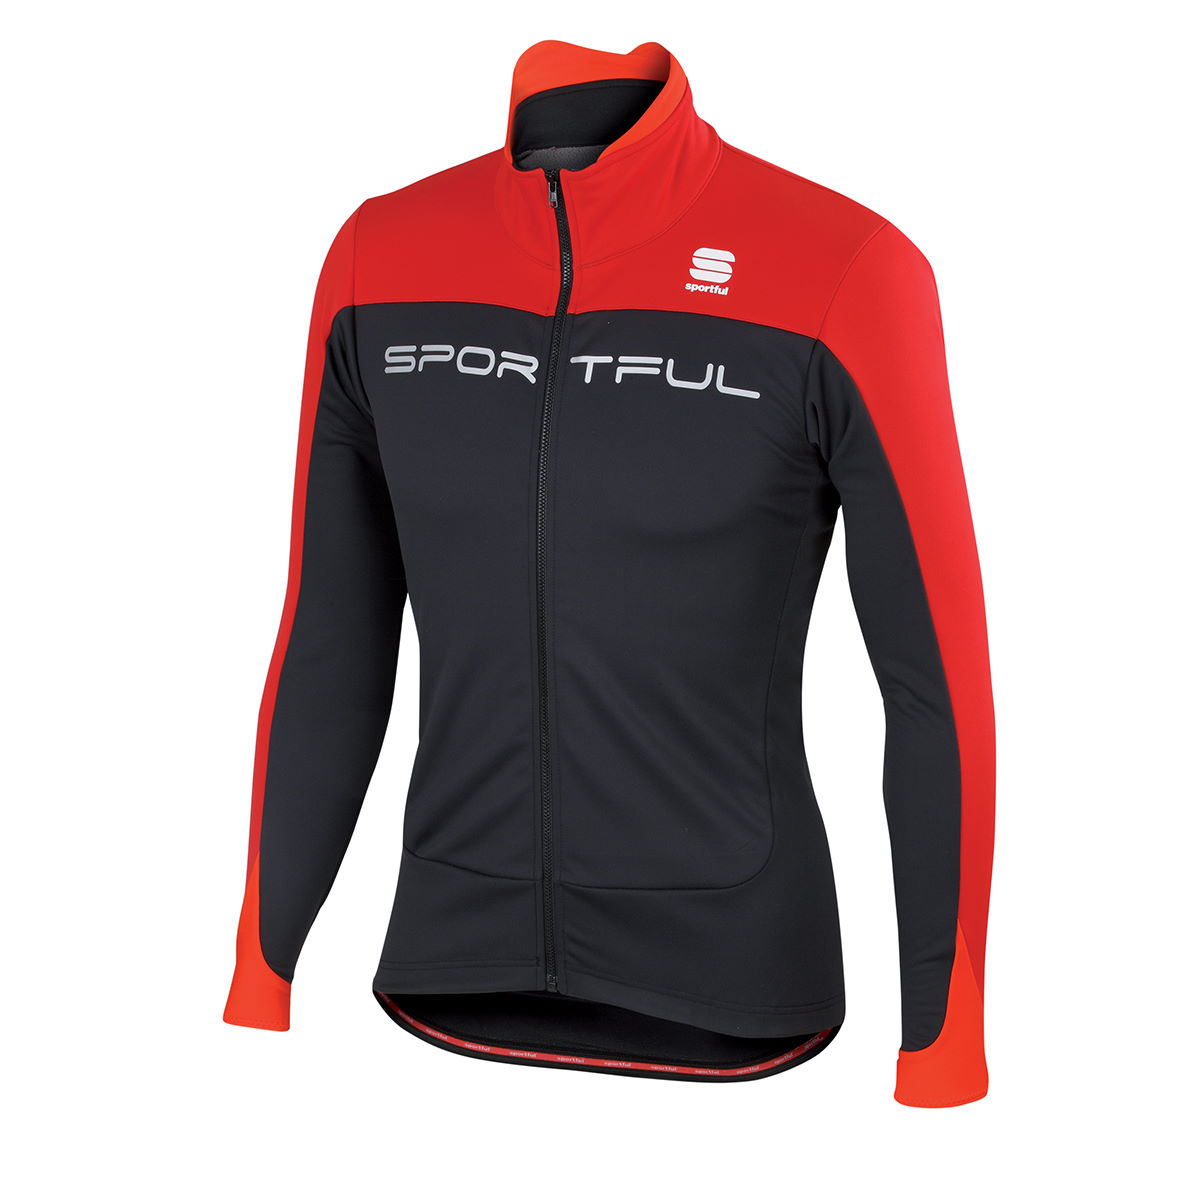 Veste Sportful Flash Softshell - M Noir/Rouge Coupe-vents vélo